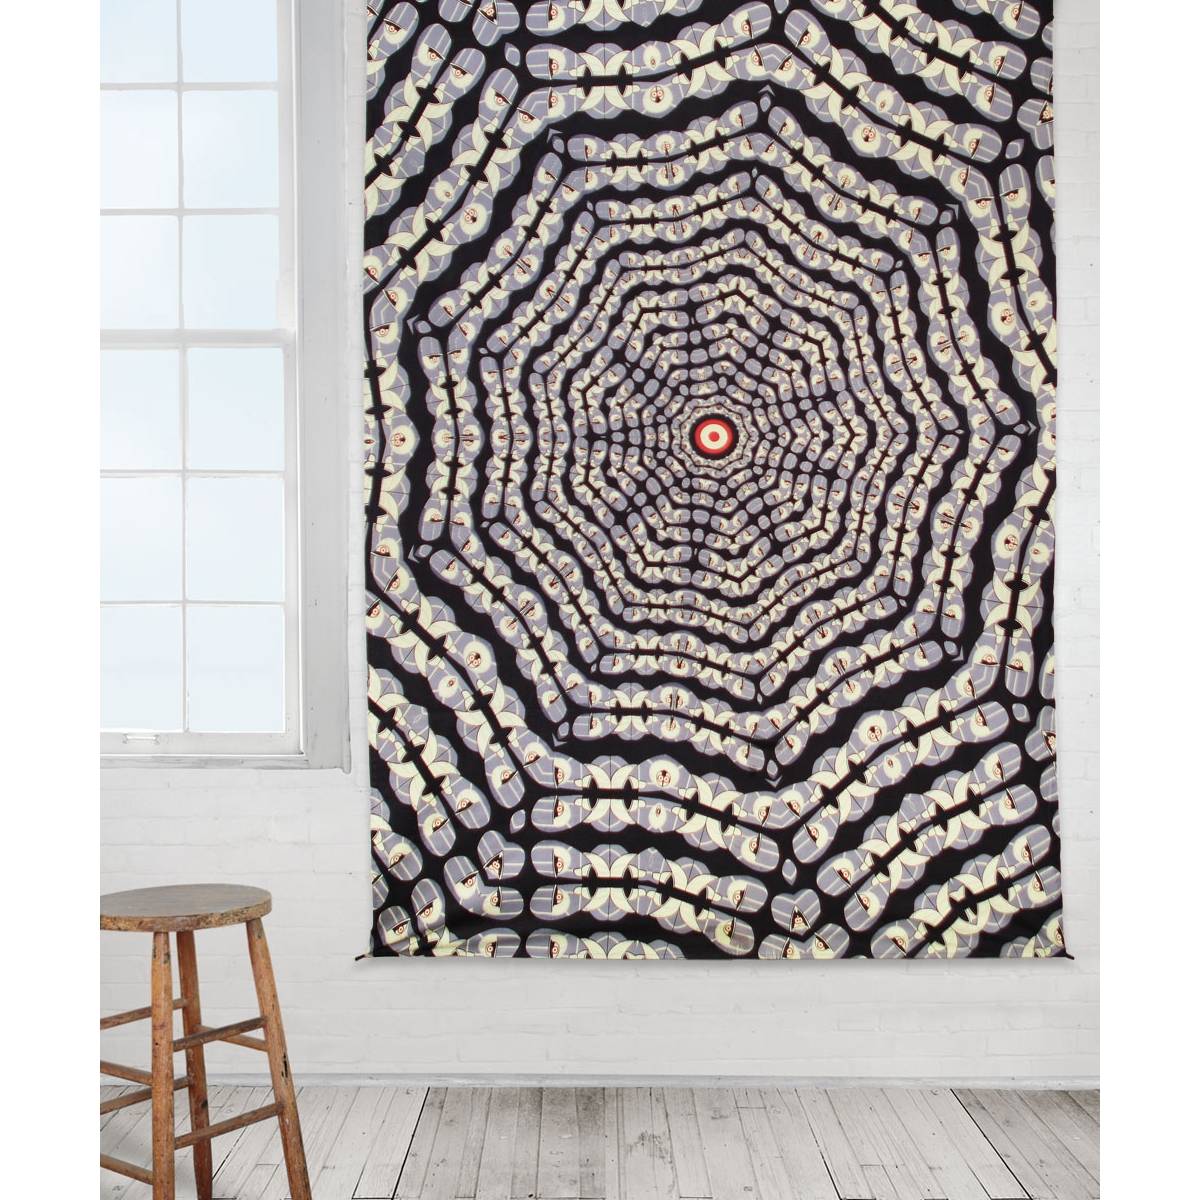 Division Bell Tapestry